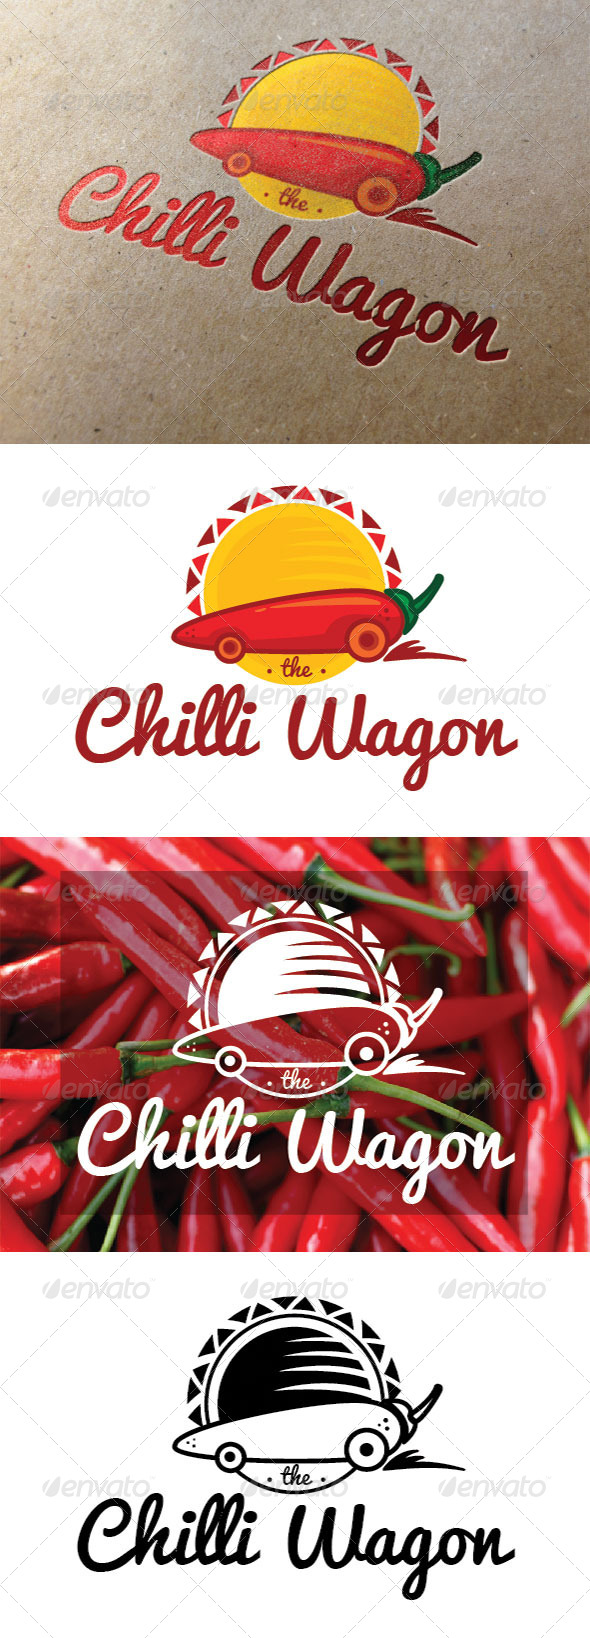 Chili Wagon Logo